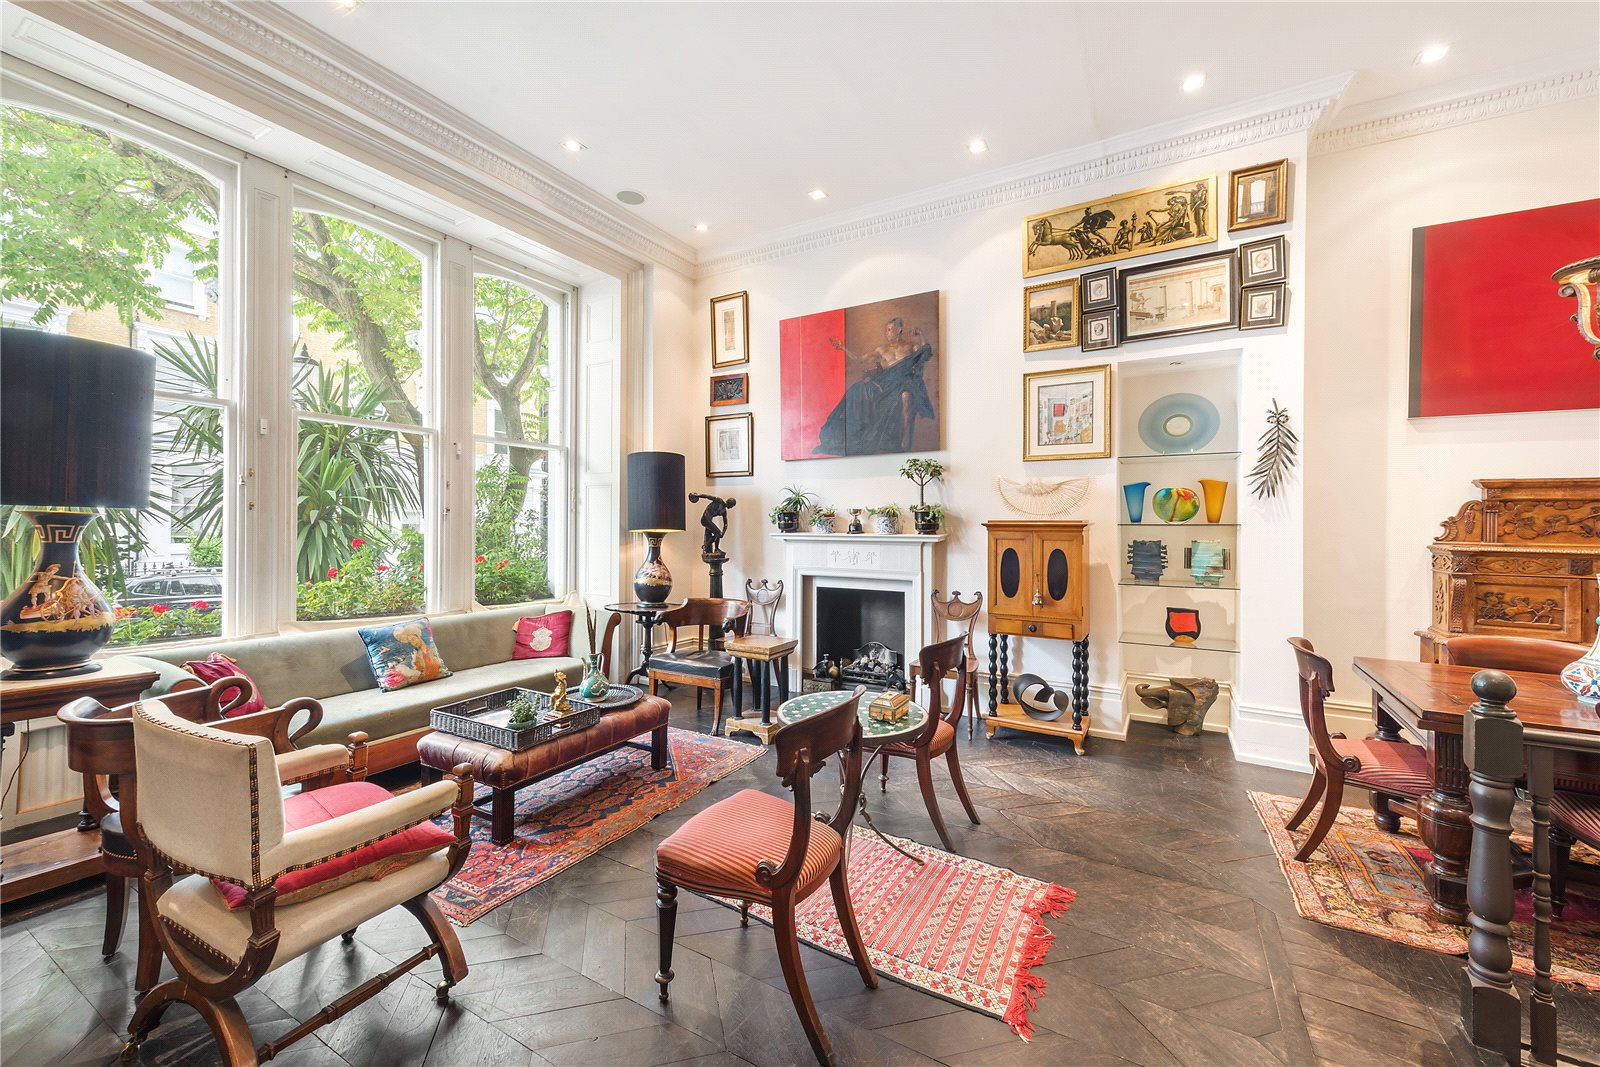 South Kensington Real Estate And Homes For Sale Christie